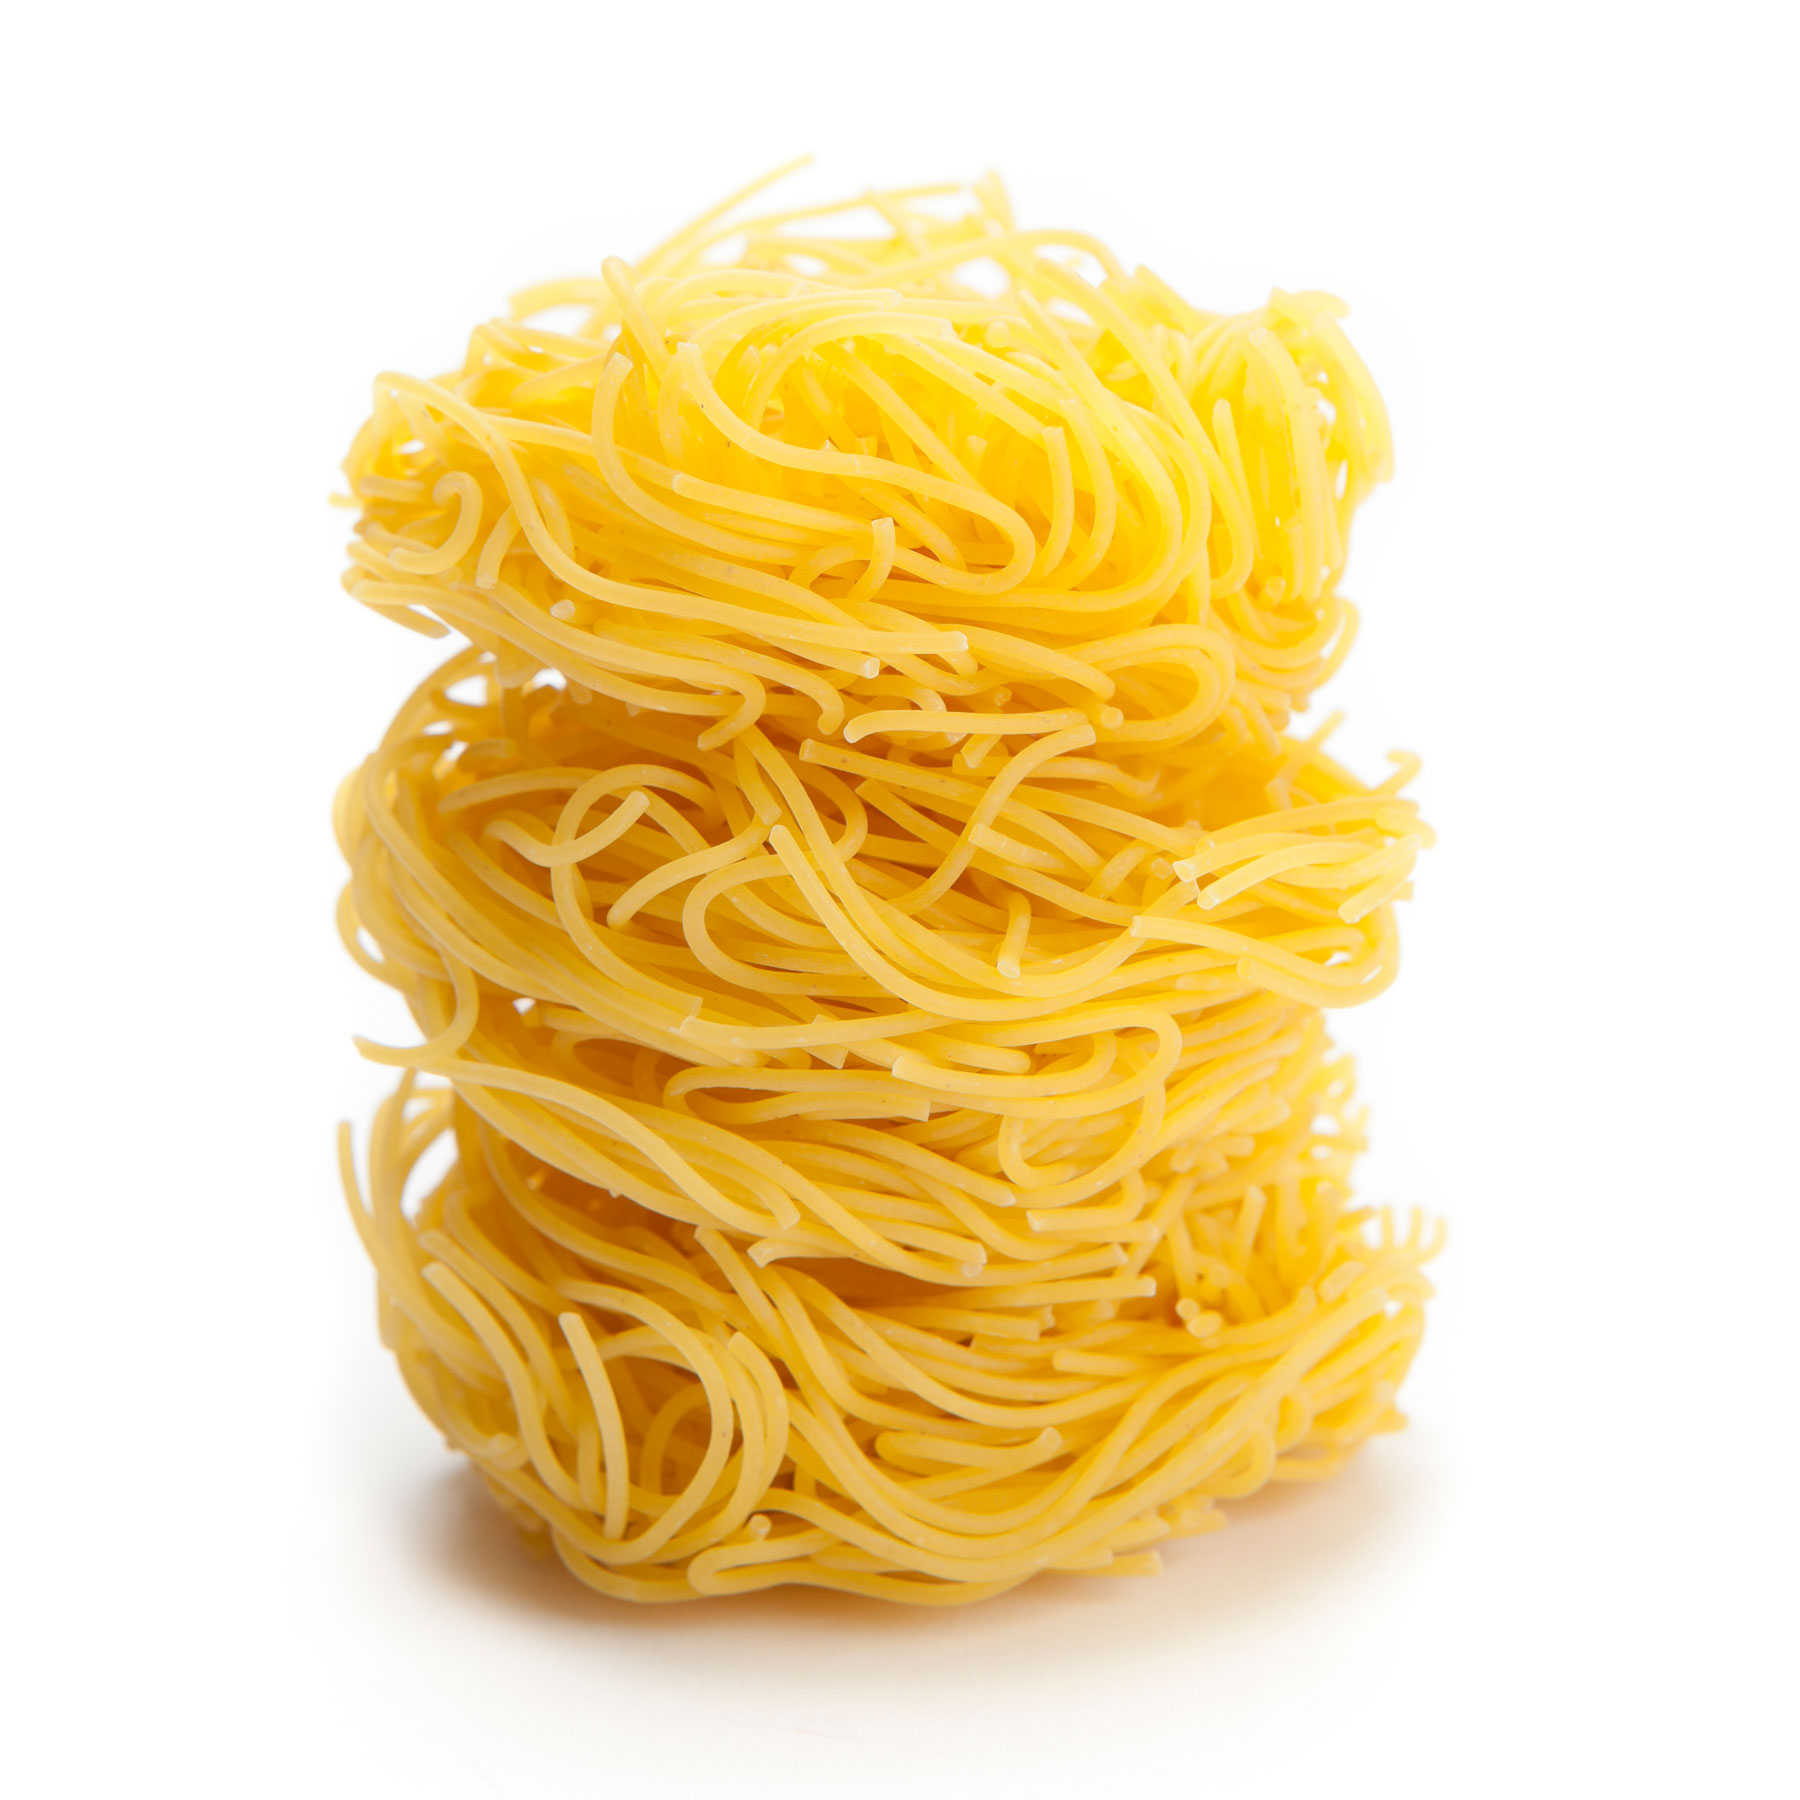 Types of pasta noodles - angel hair or capellini or capellini d'angelo